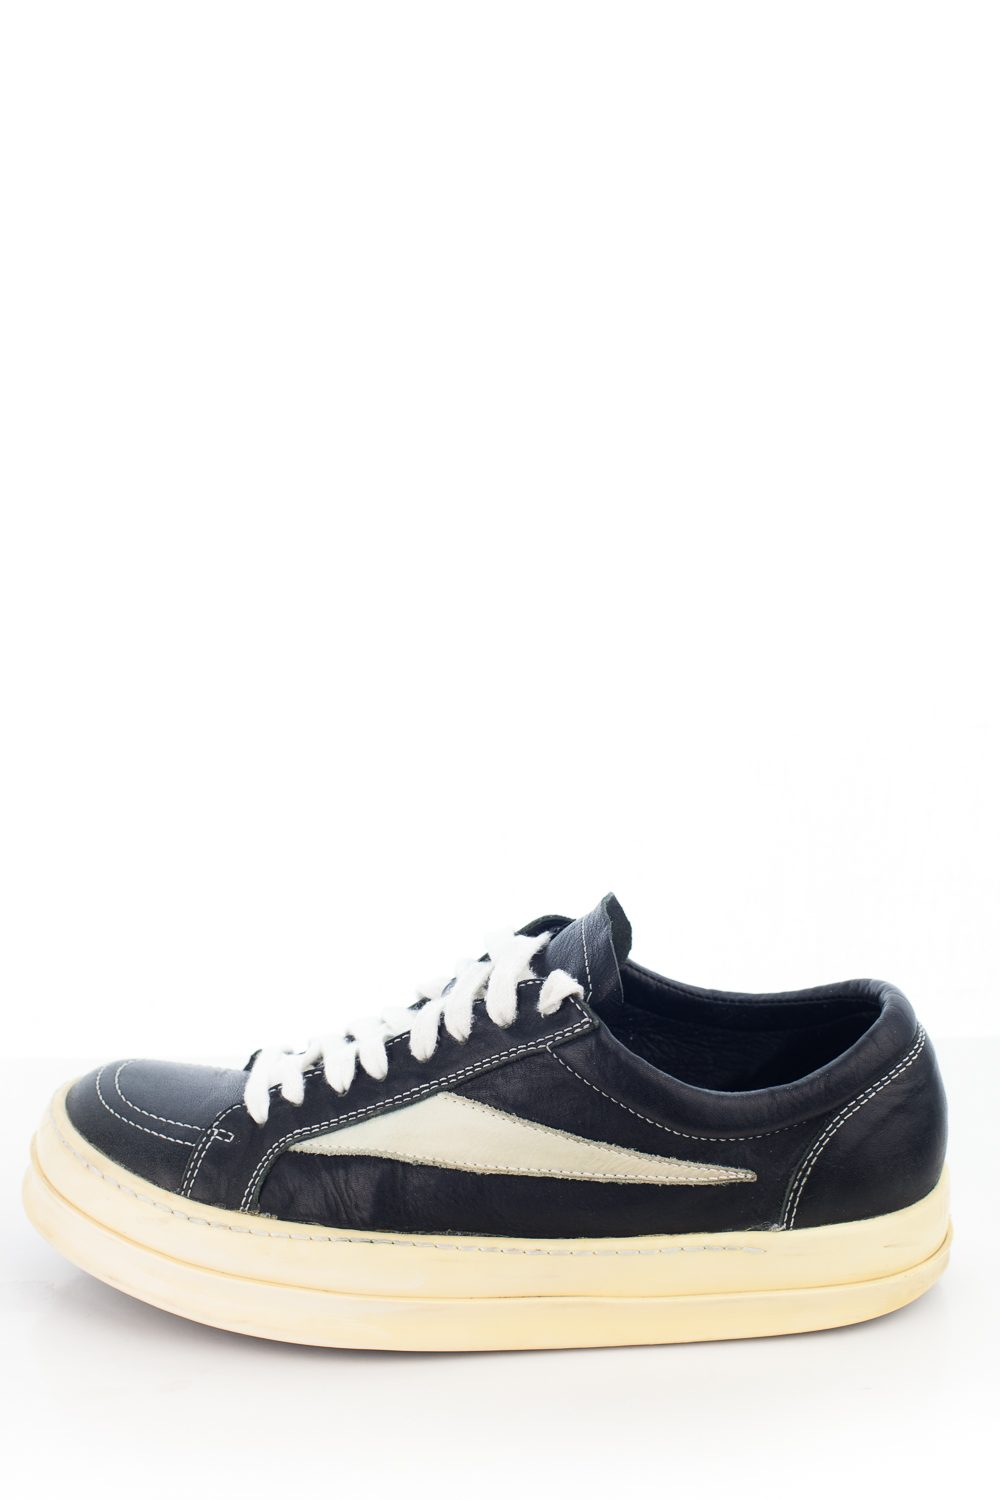 "2007 ""Vans"" in Black/White"